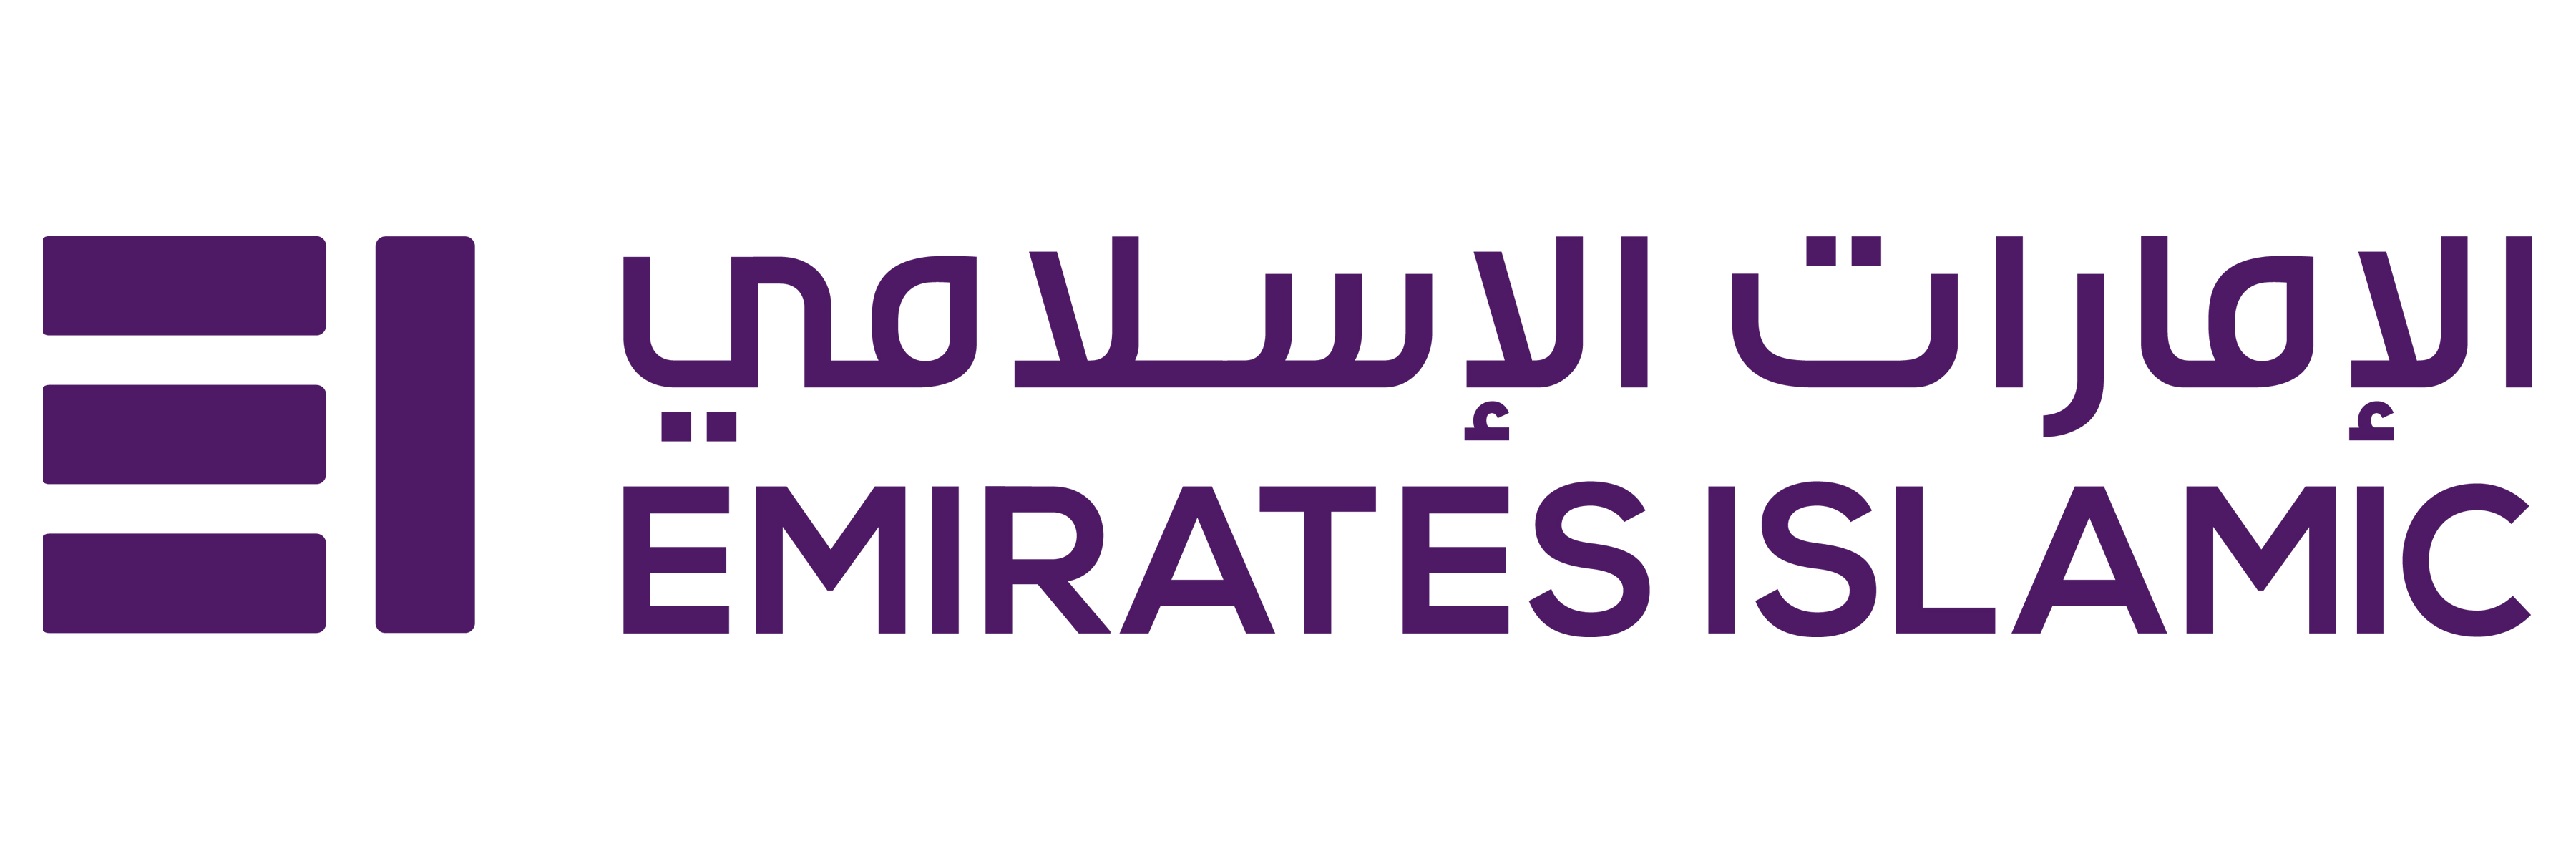 Emirates Islamic announces Ramadan initiatives